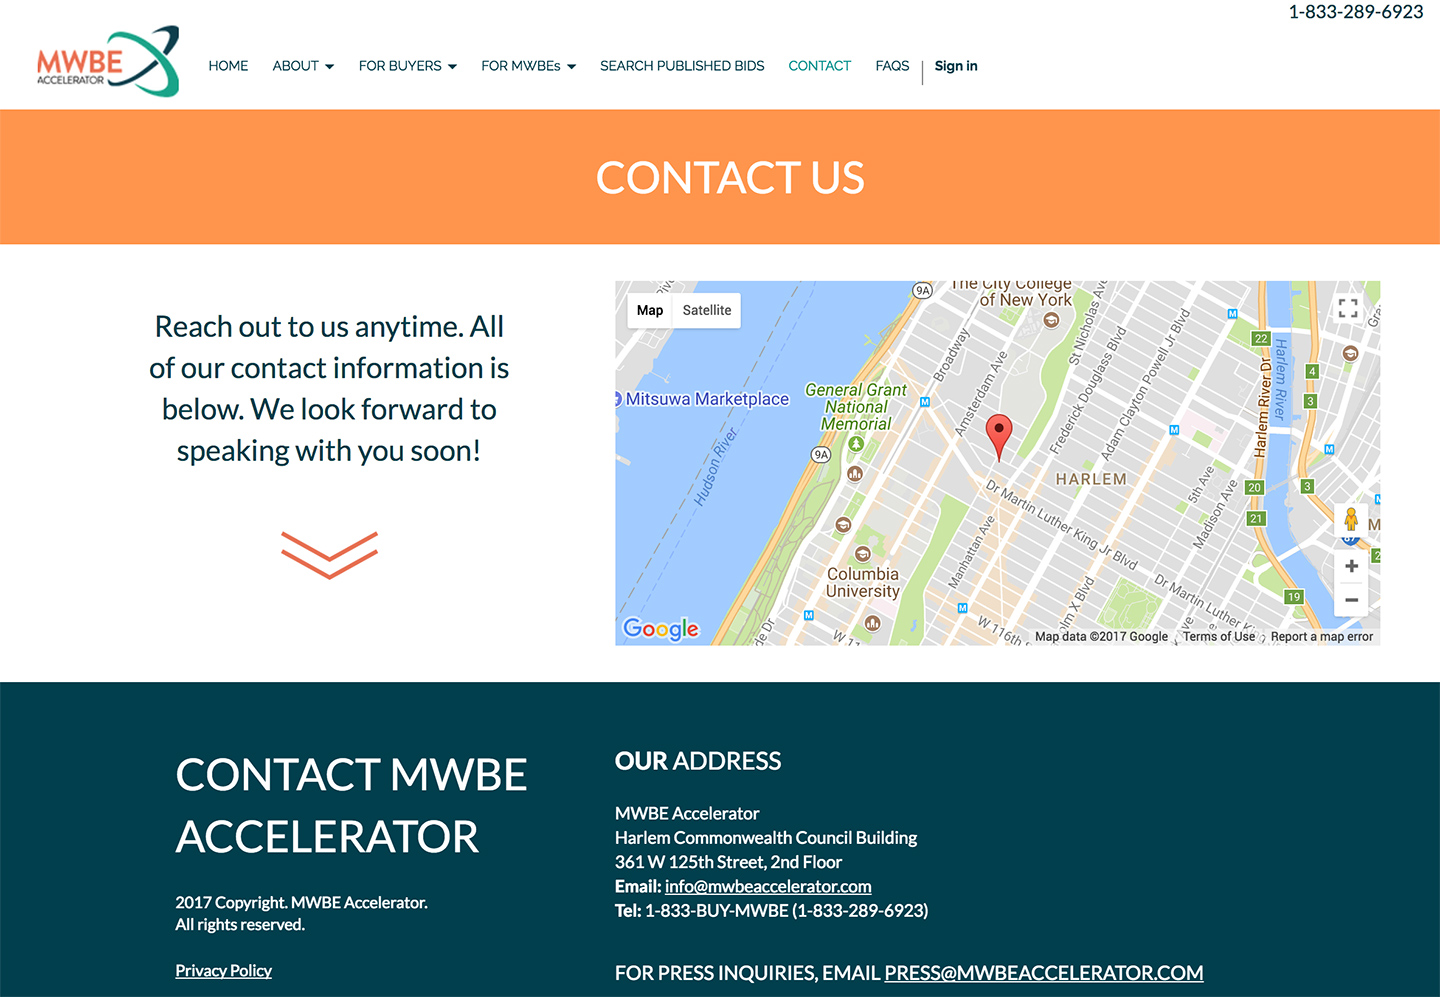 MWBE Accelerator: Embedded Map